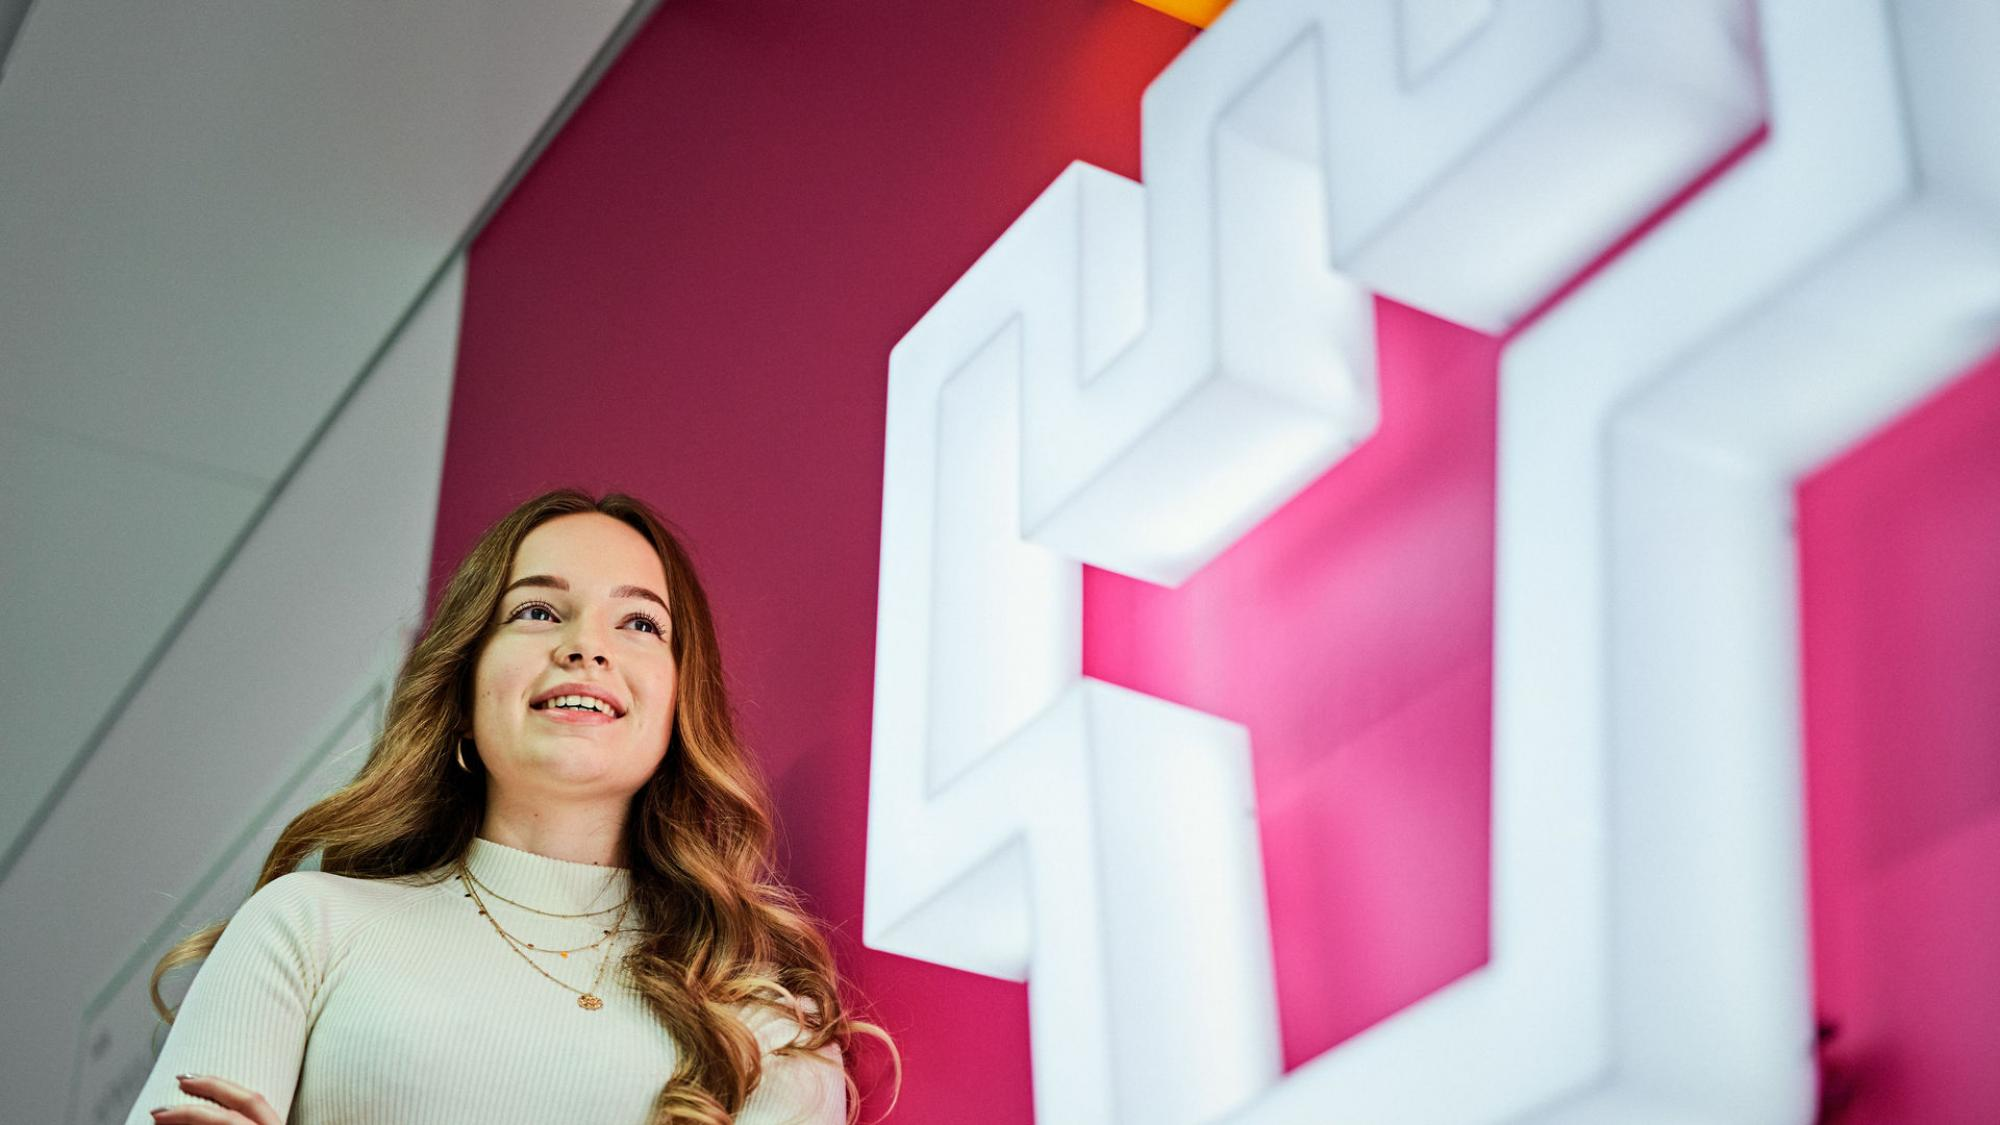 A young woman leans on a pink-coloured wall with a big illuminated logo of the University of Oulu attached to it.